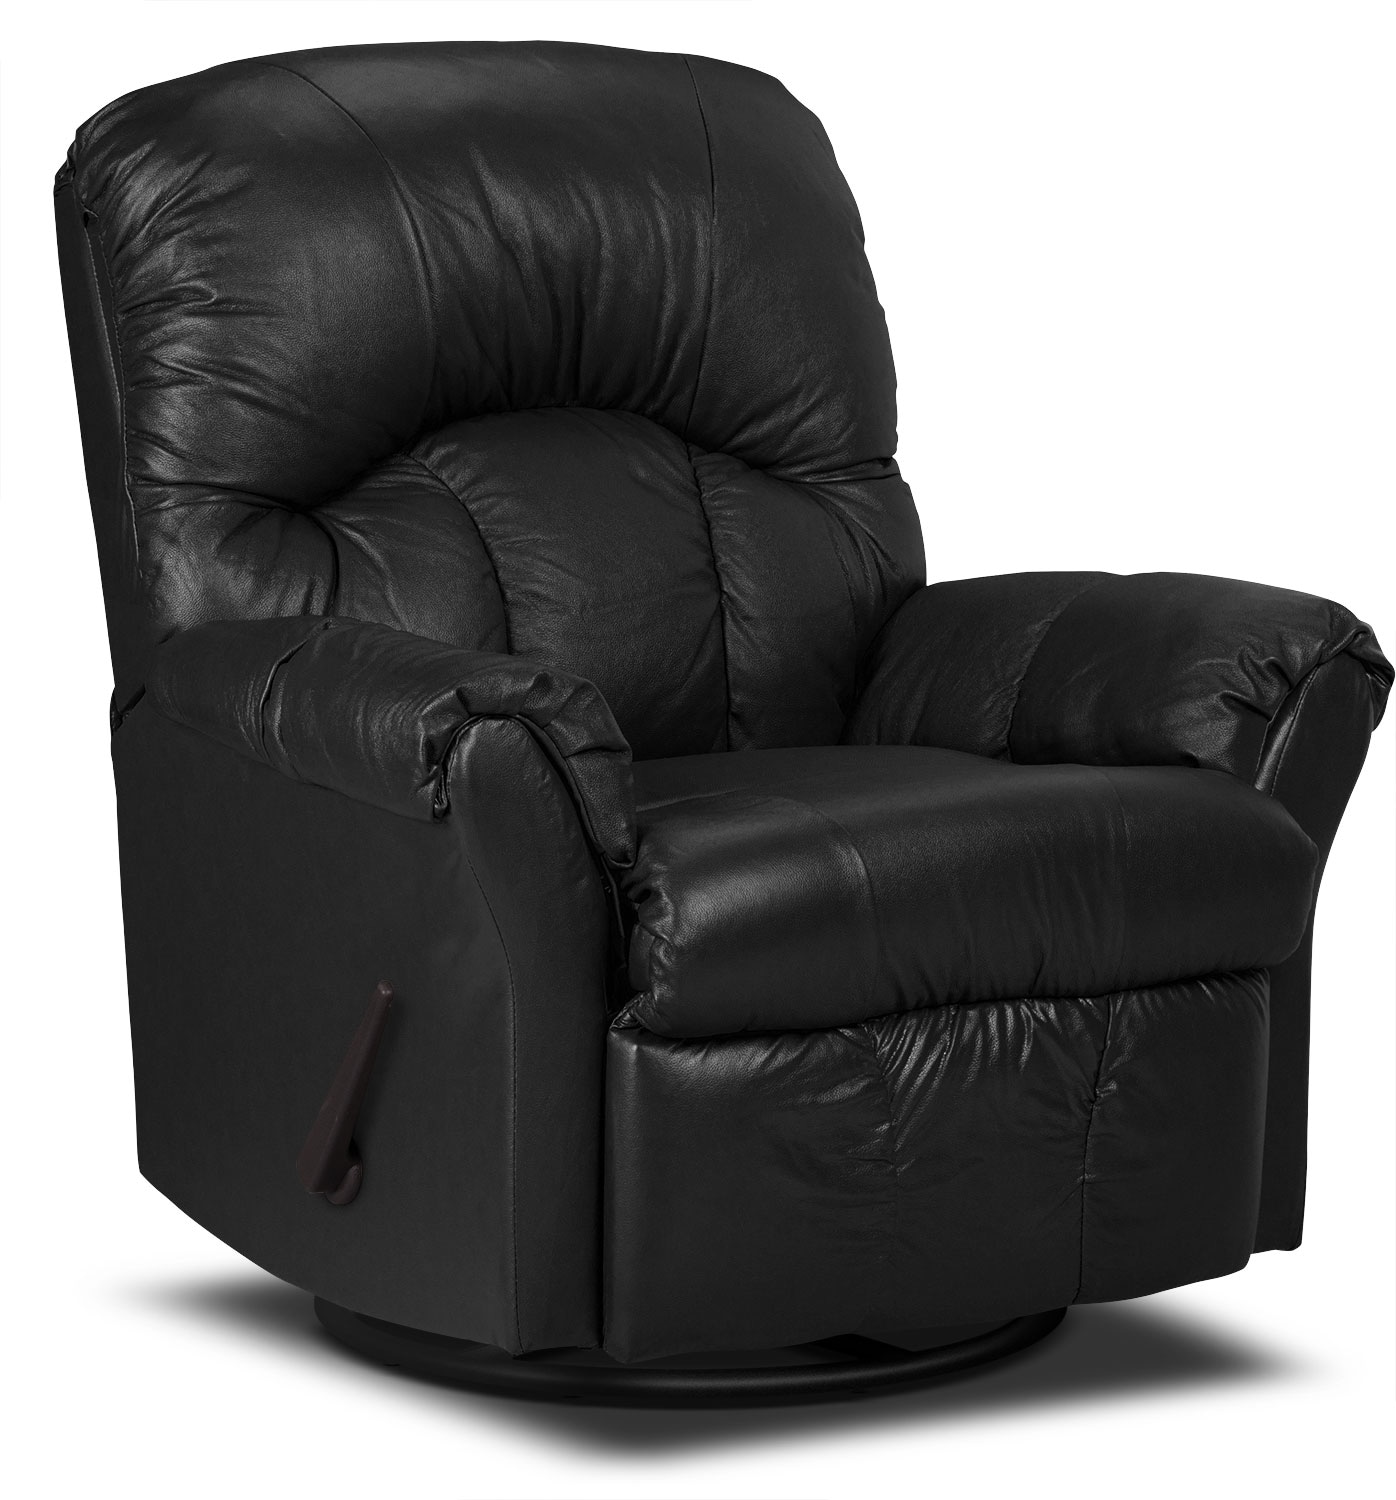 Living Room Furniture - Designed2B Recliner 6734 Genuine Leather Swivel Glider Chair - Black